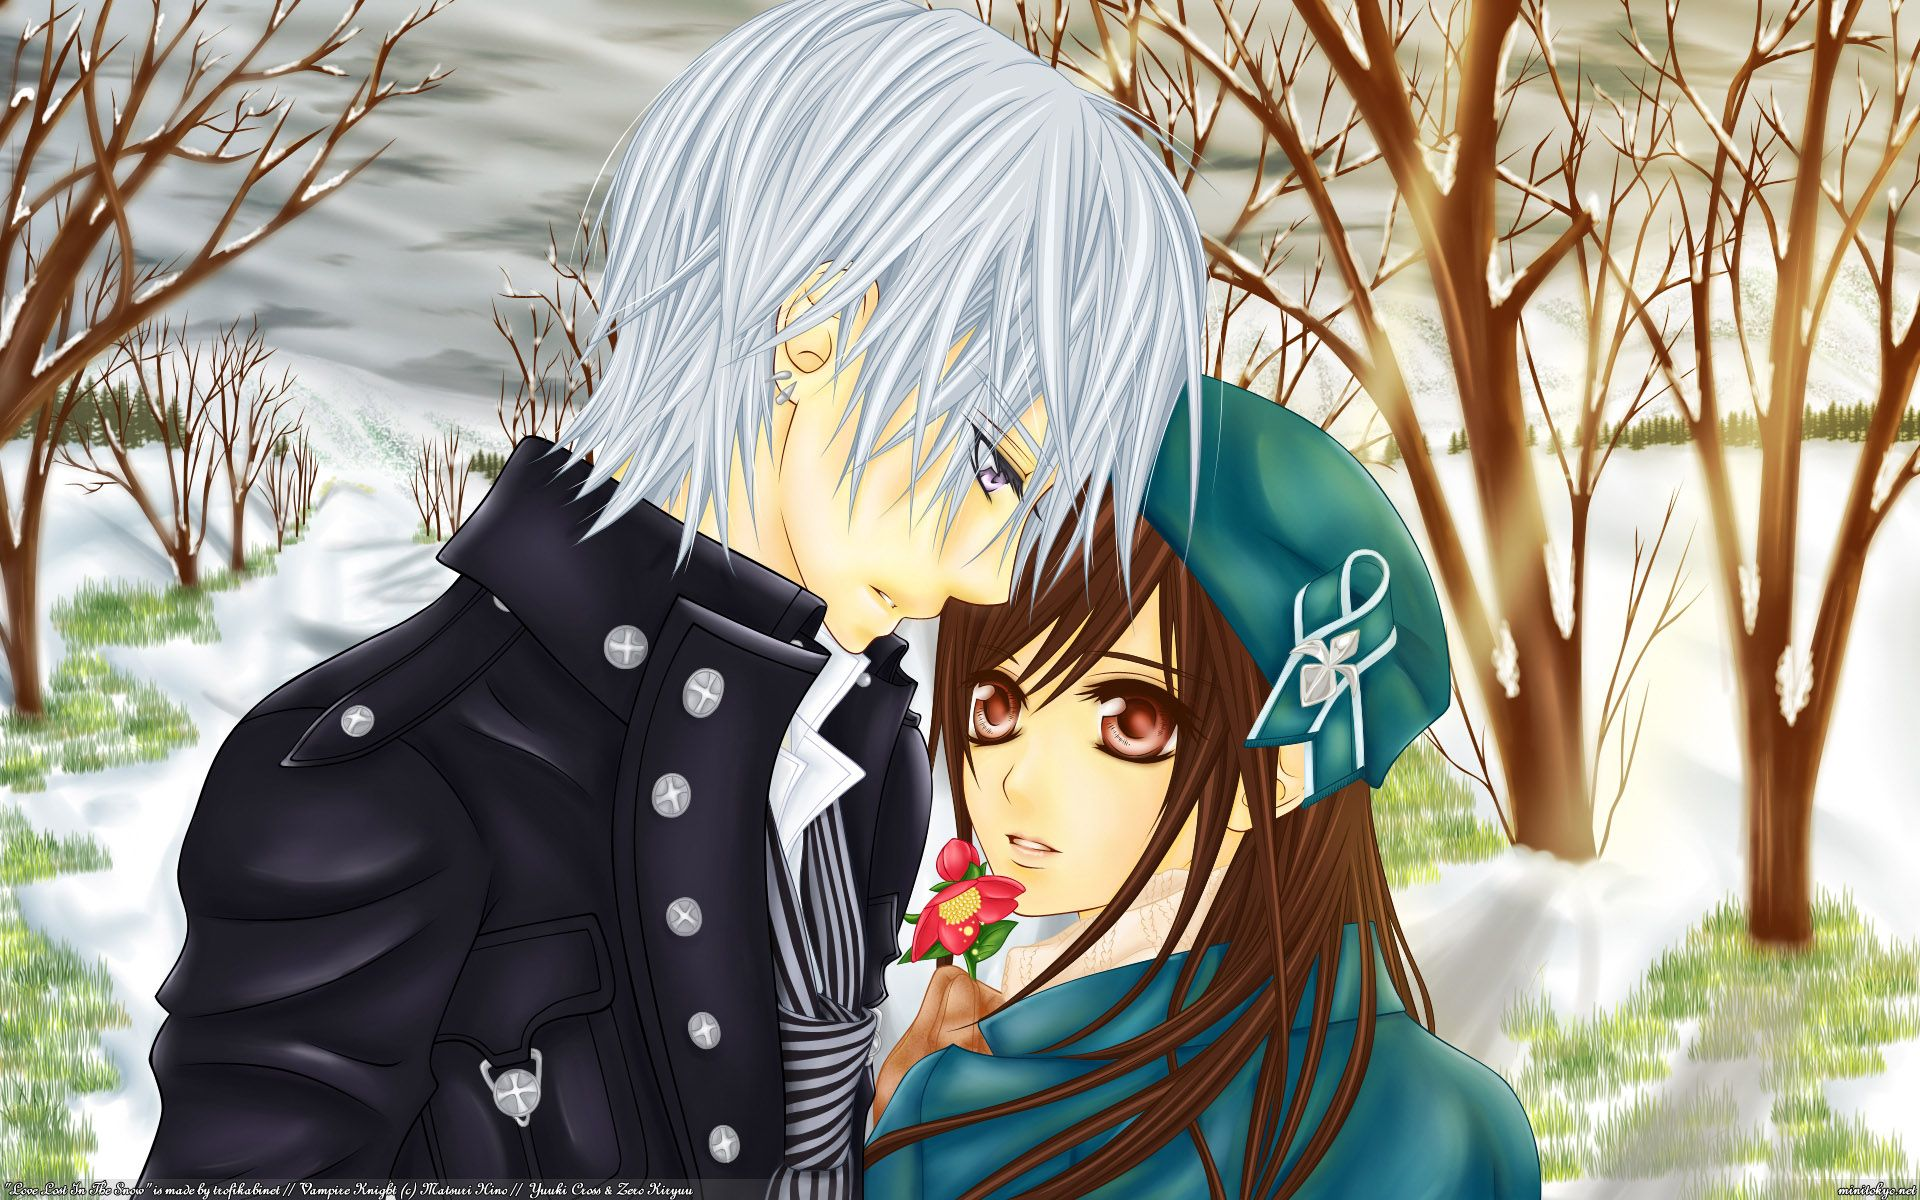 Good Love Couple Cartoon HD Wallpaper Download - 03e18e2ecbb38c71c2a89a7127bb3579  HD_932773.jpg